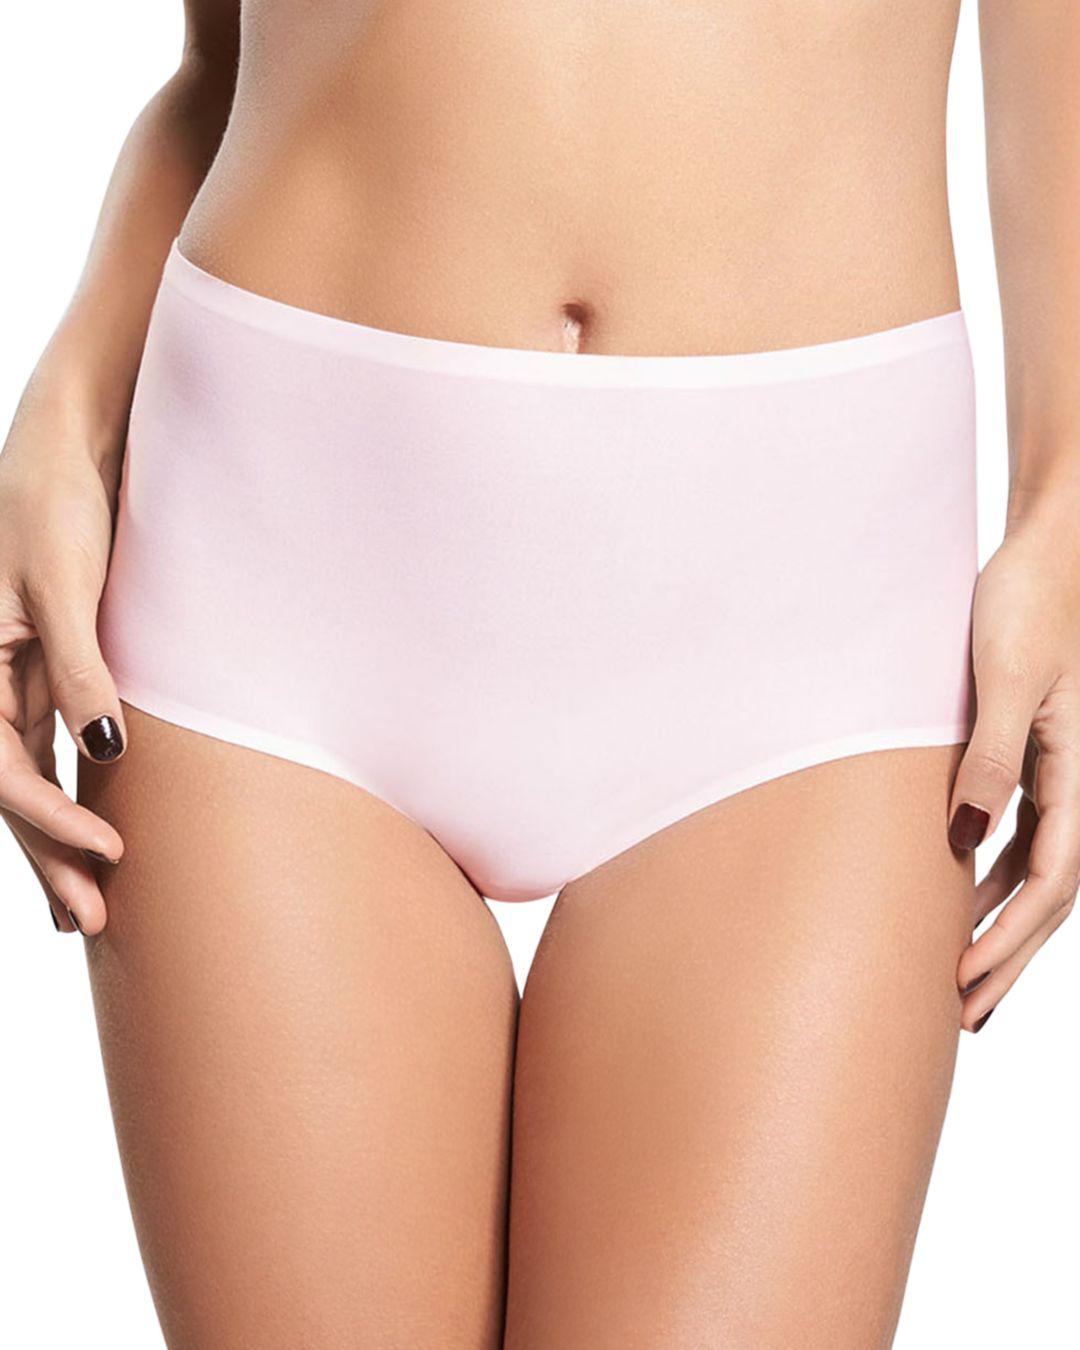 1b6c74241fb6 Lyst - Chantelle Soft Stretch One-size Seamless Briefs in Pink ...